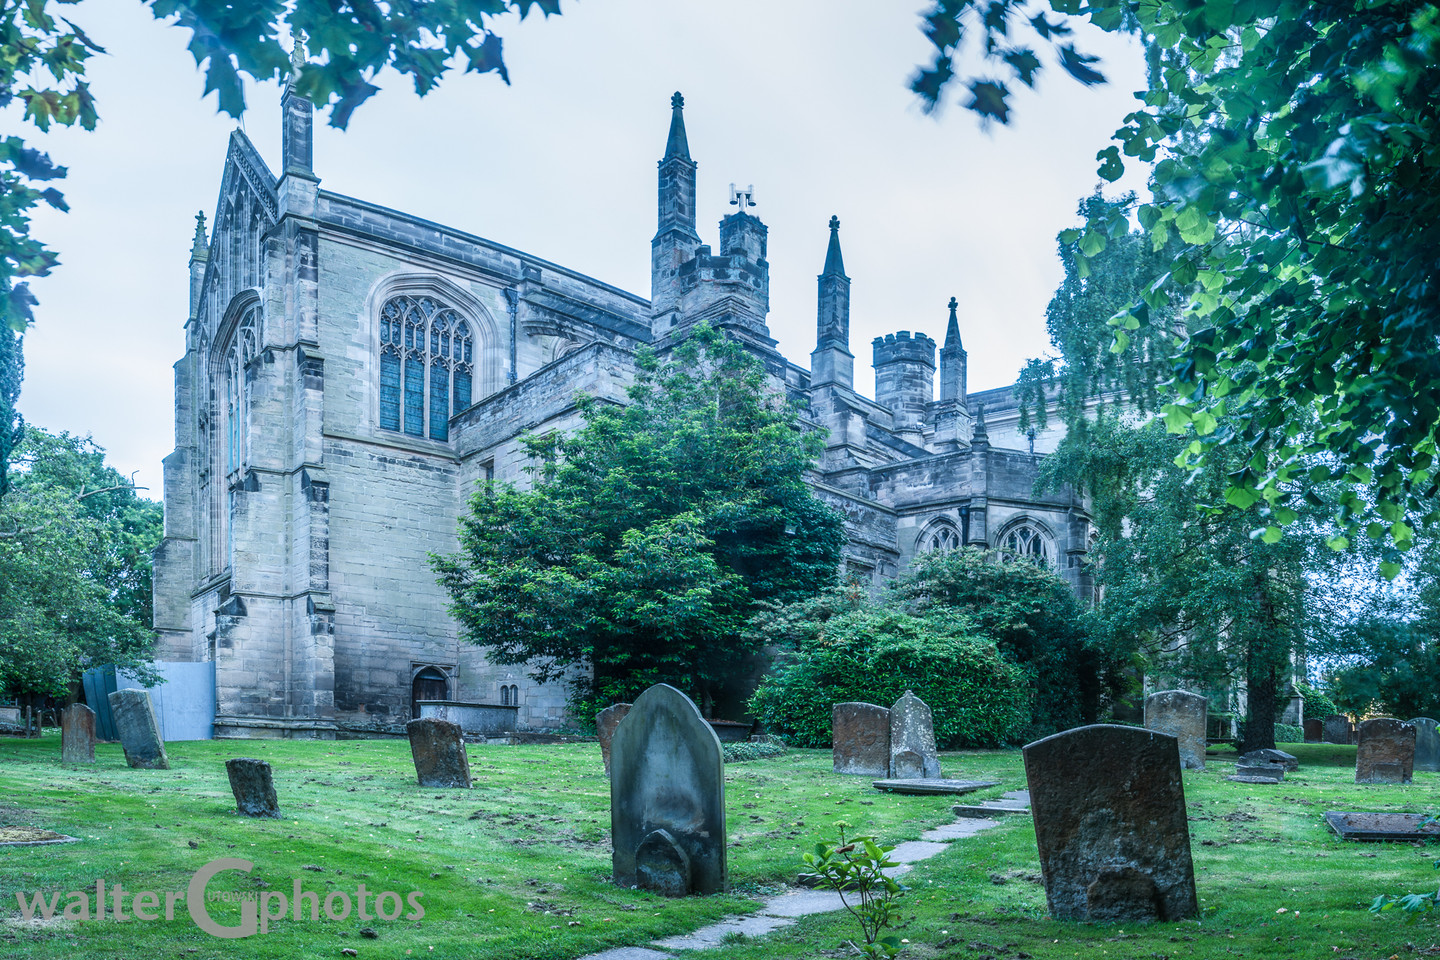 St Mary's Church and graveyard, Warwick, England